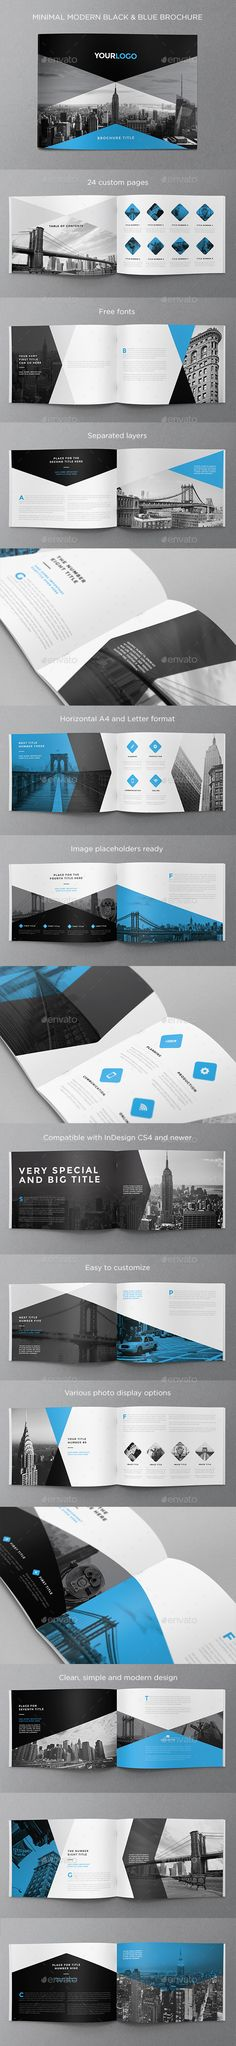 Fully customizable professional template for a brochure. Web Design, Layout Design, Print Layout, Design Brochure, Booklet Design, Brochure Layout, Branding Design, Brochure Template, Brochure Inspiration